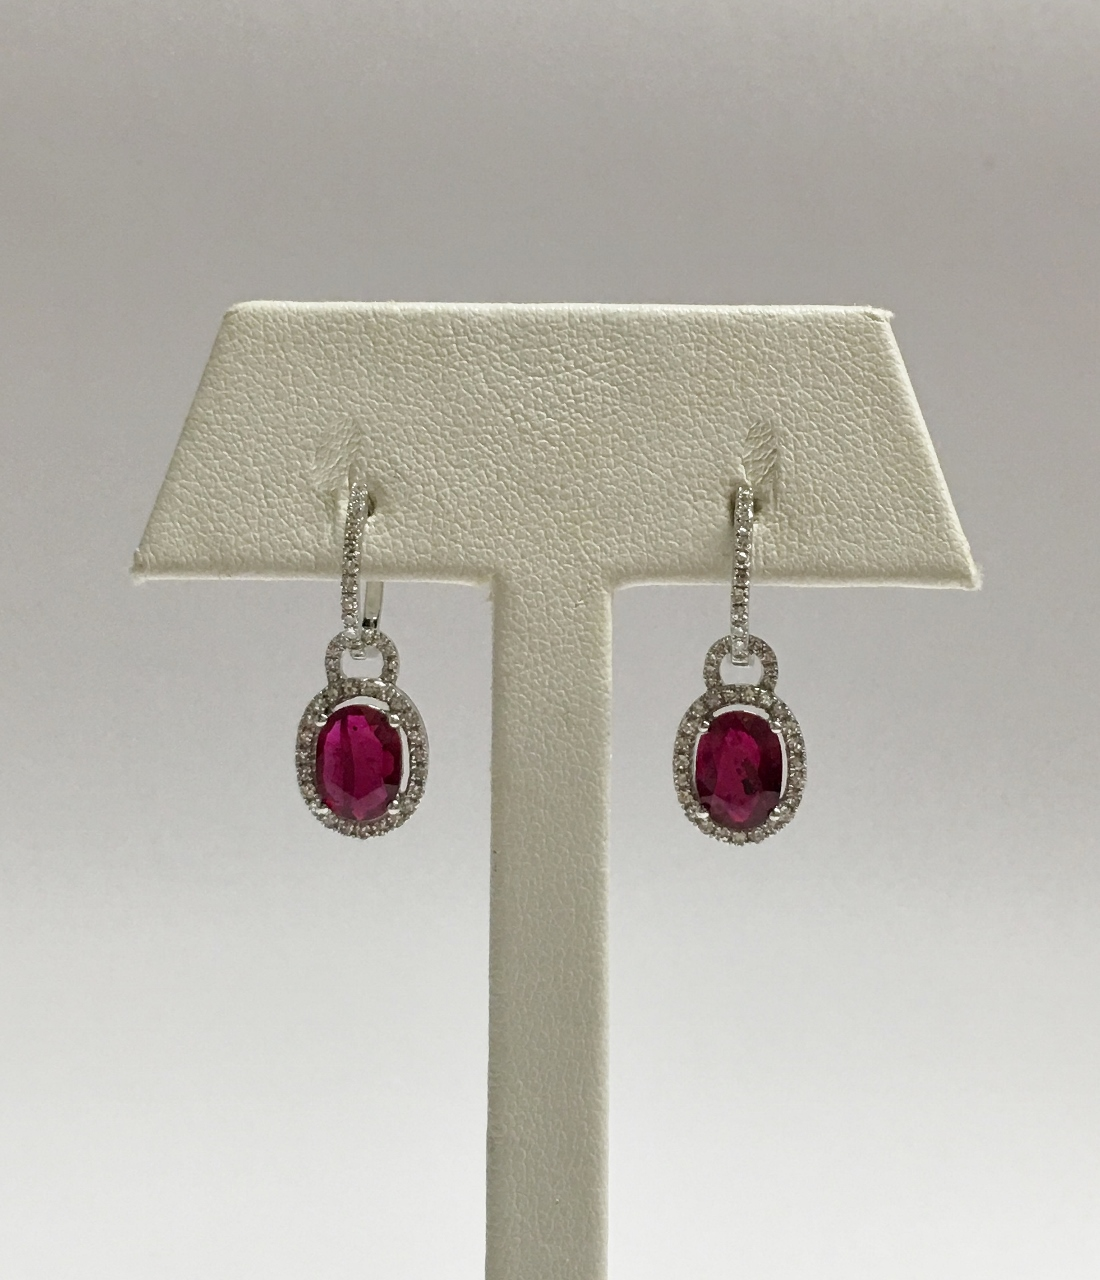 18K White Gold Dangling 2 Carats Natural Ruby Diamond Earrings